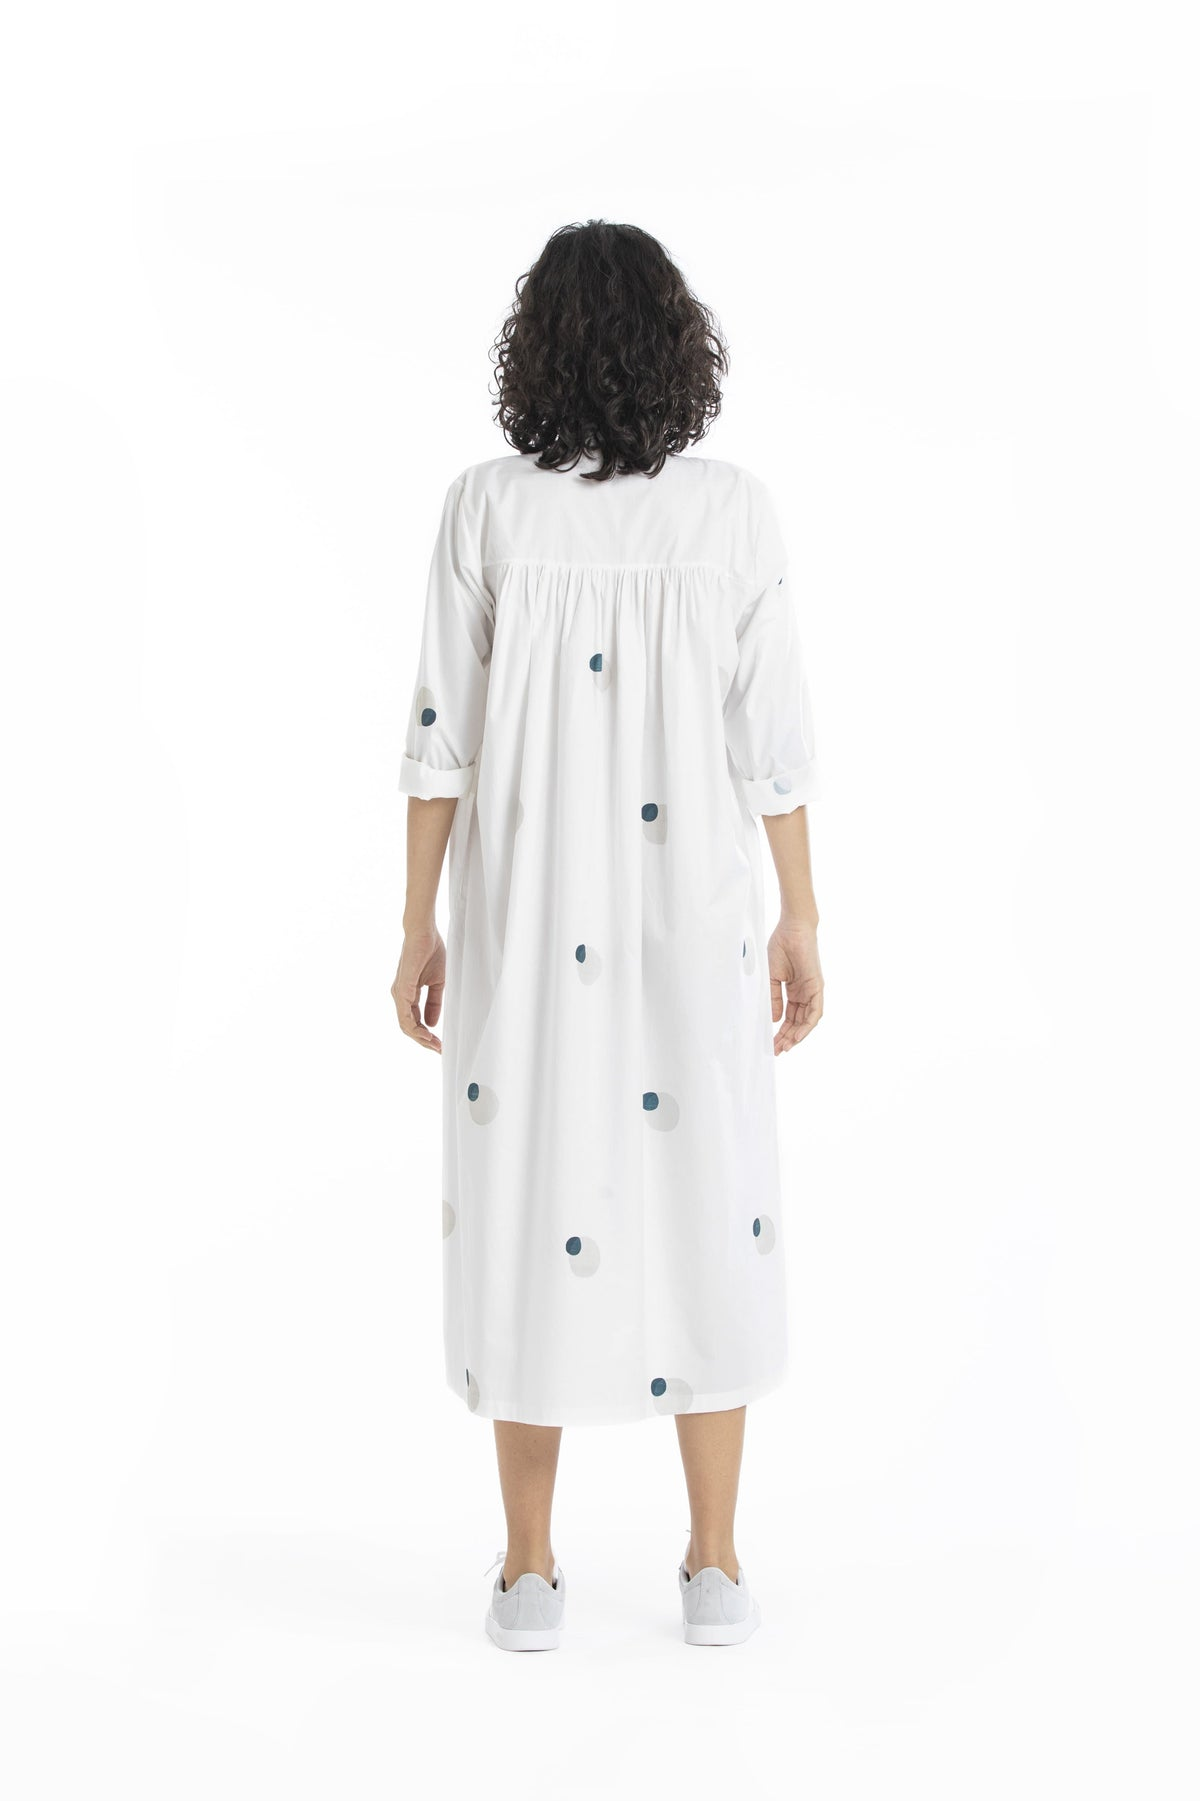 Three Dresses Printed dress in white cotton poplin